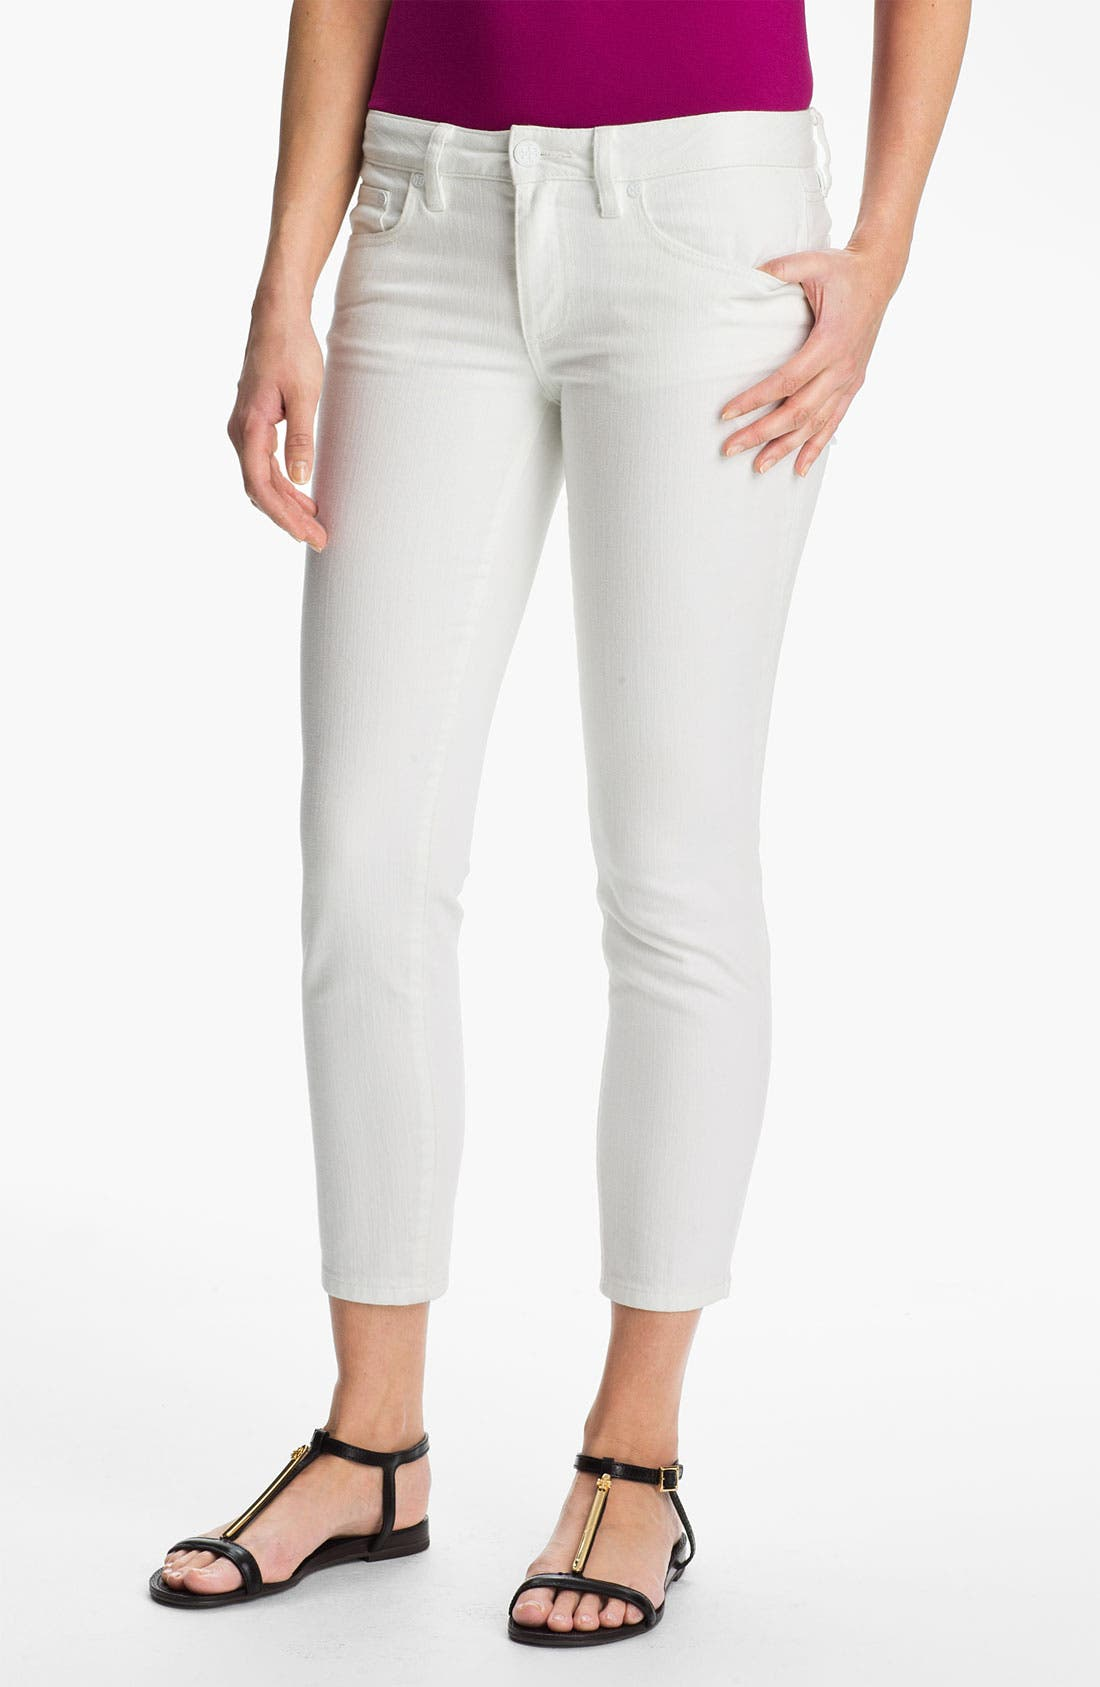 Main Image - Tory Burch 'Alexa' Crop Skinny Stretch Jeans (Stone)